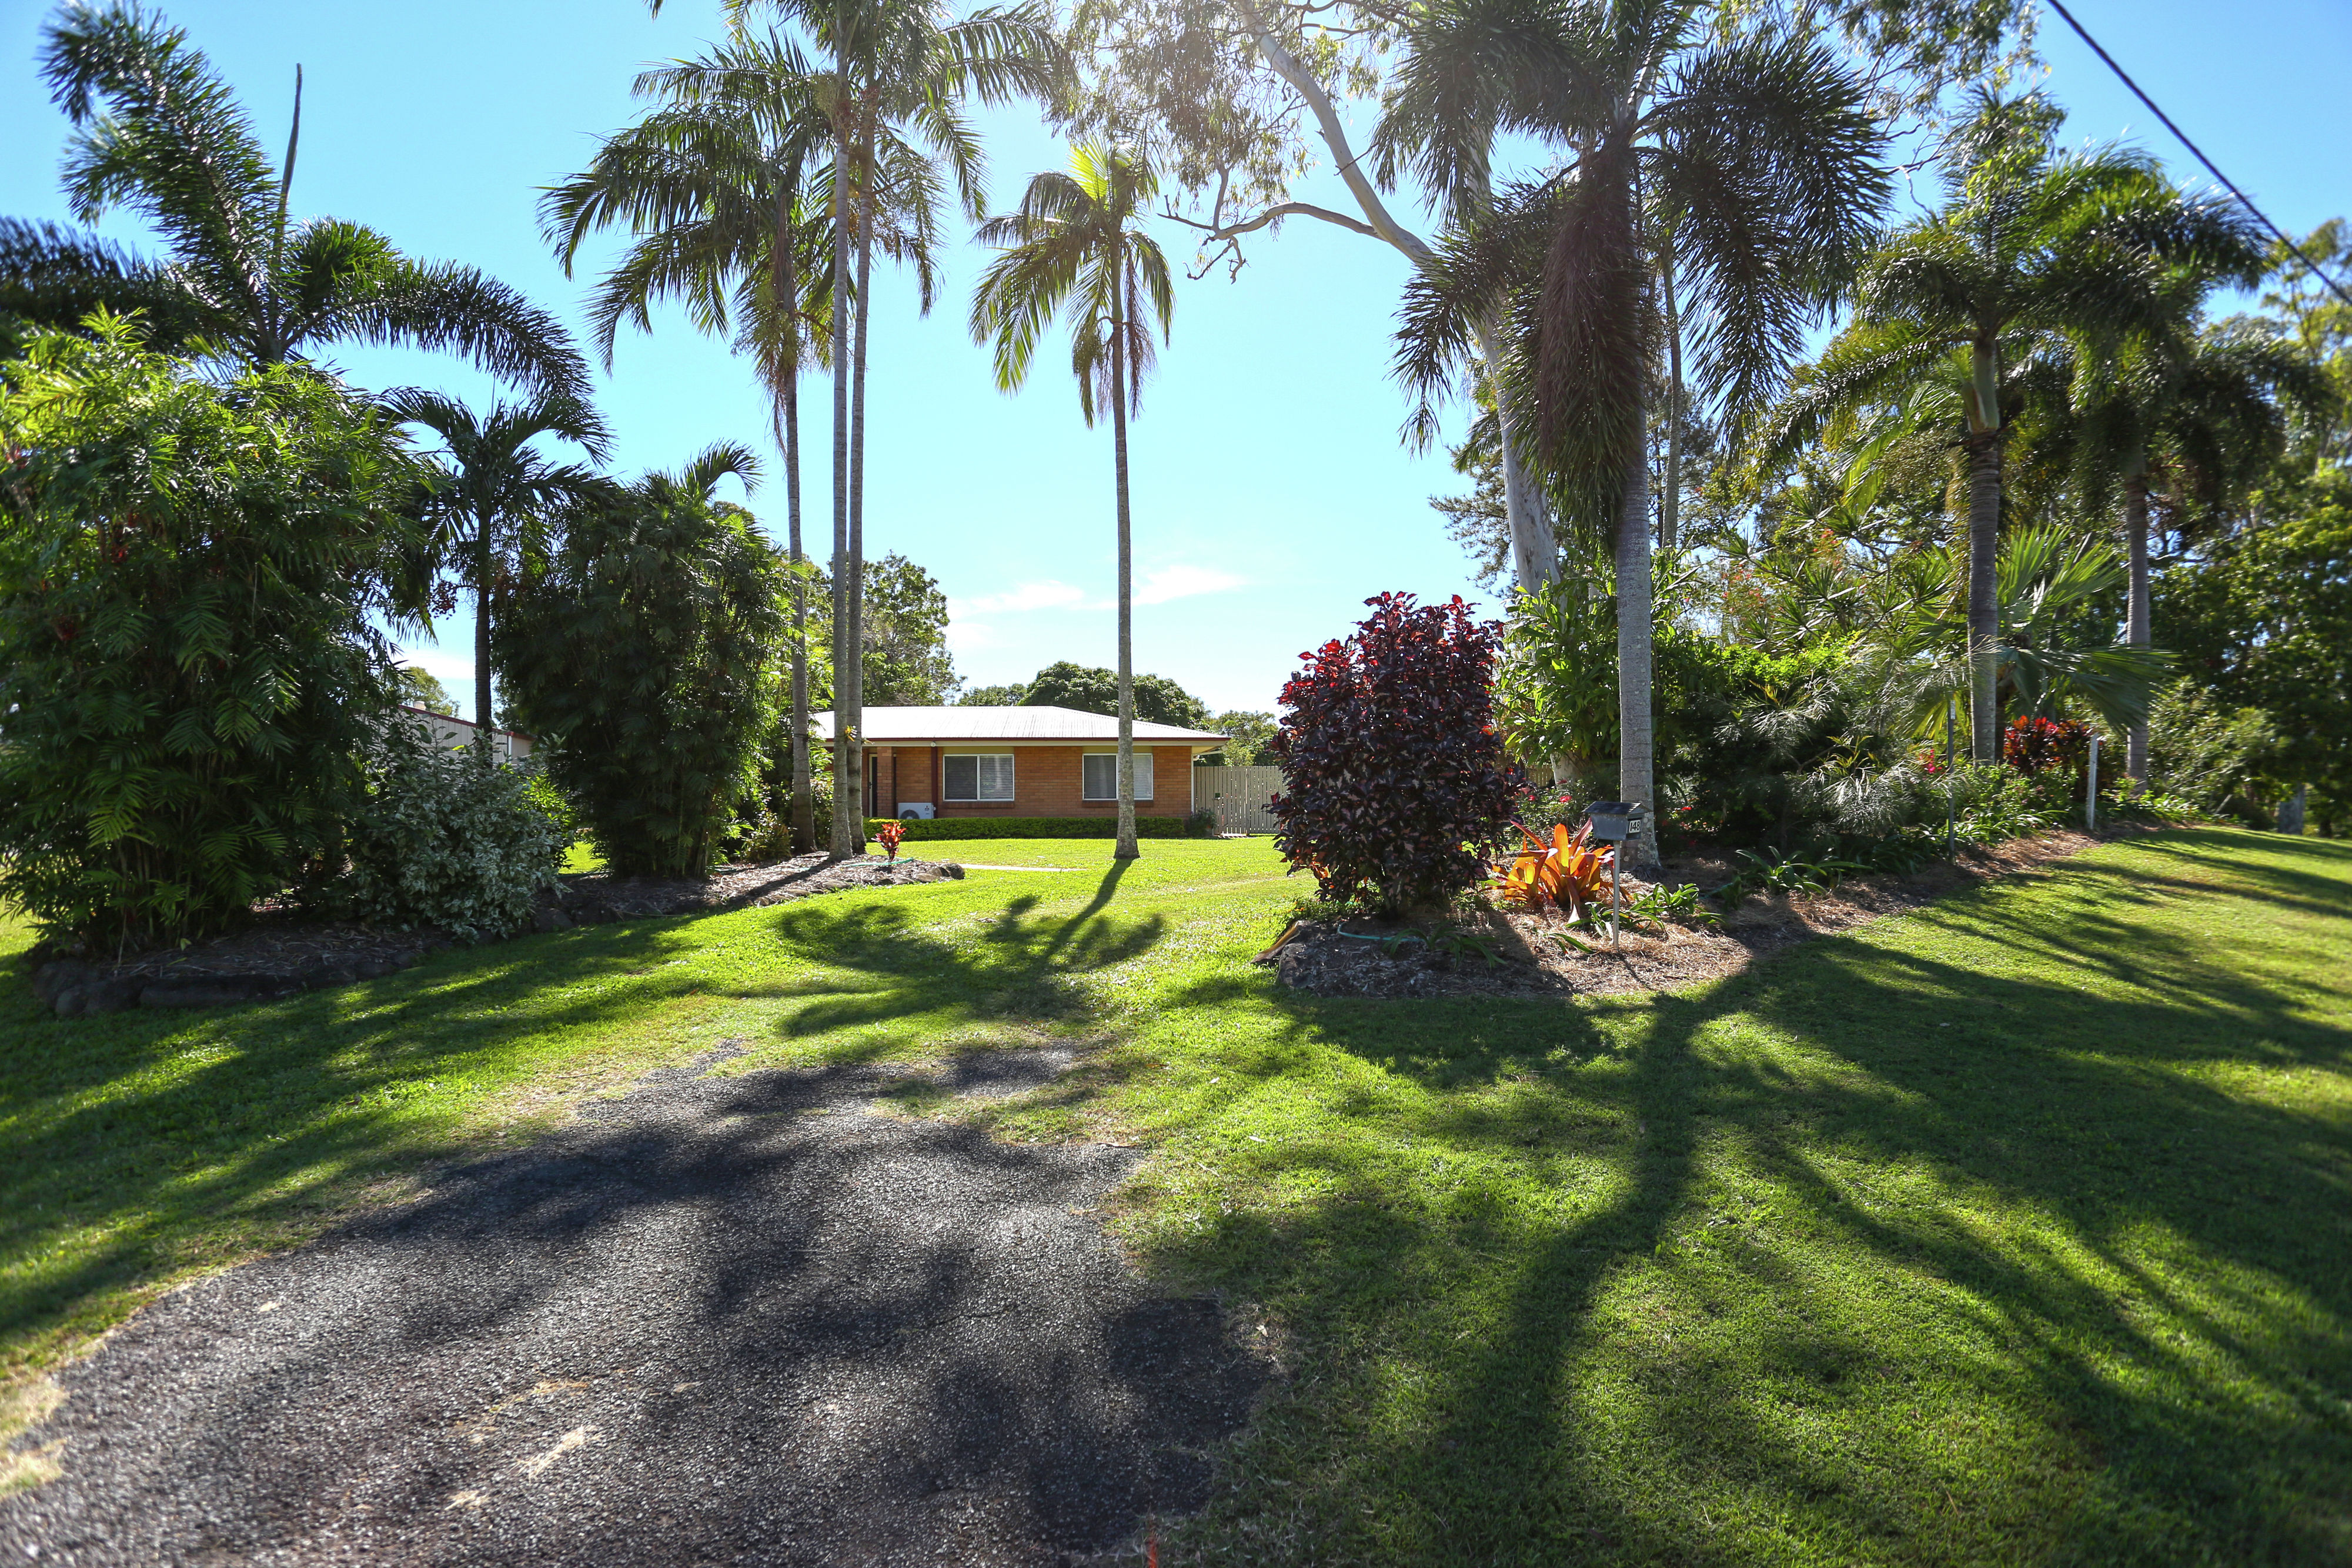 Property in Eimeo - Sold for $382,000